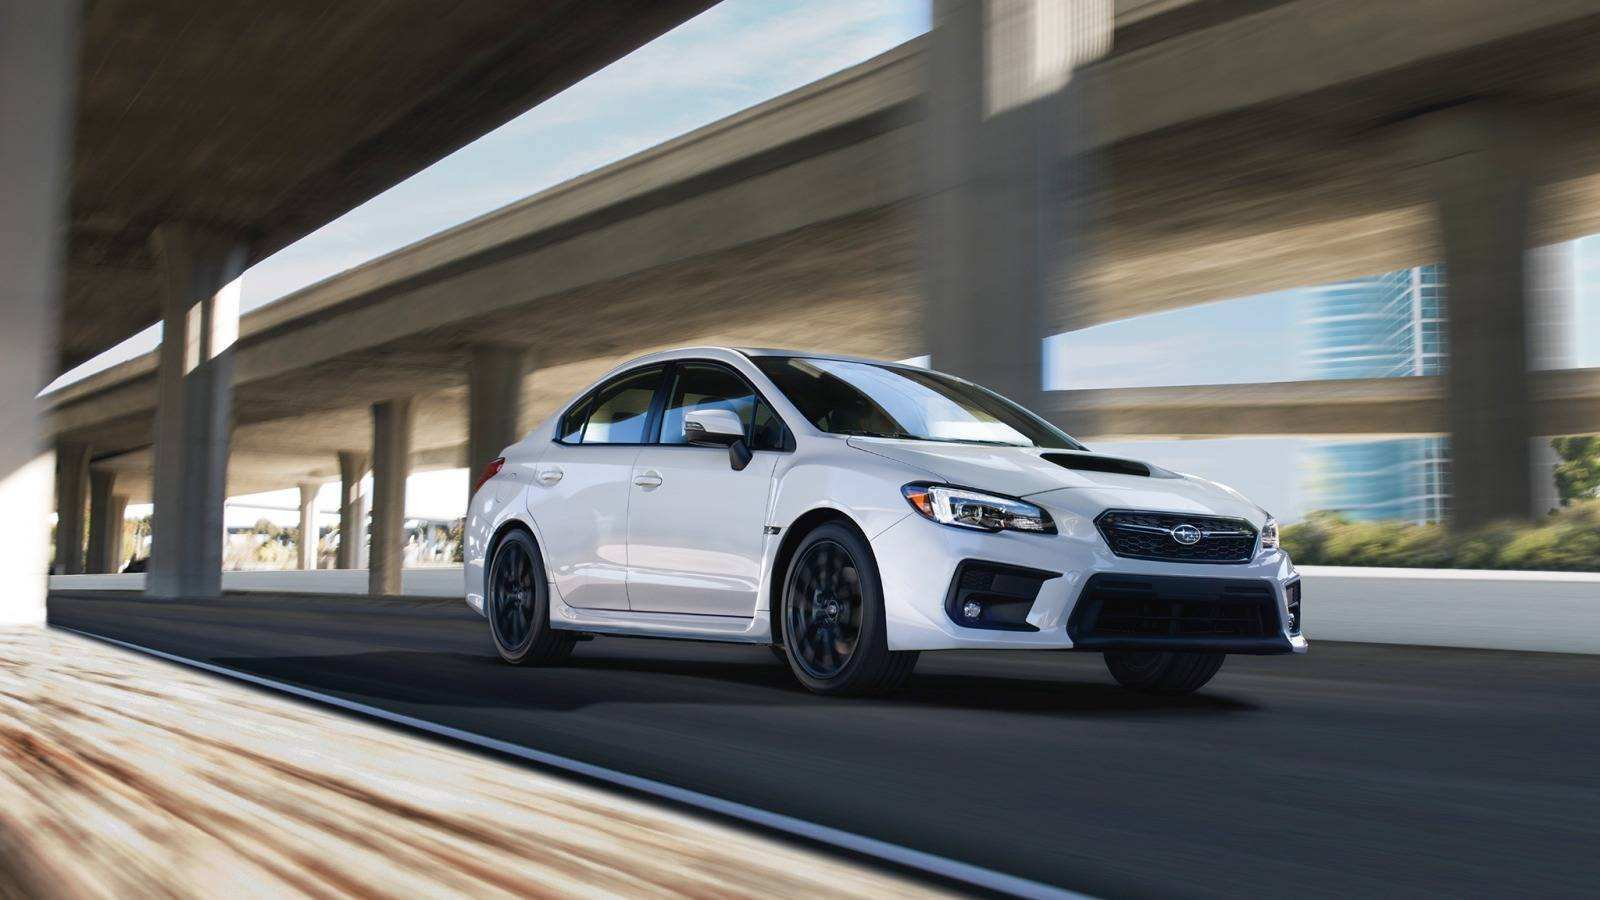 28 Great 2019 Subaru Wrx Hatchback Pricing by 2019 Subaru Wrx Hatchback